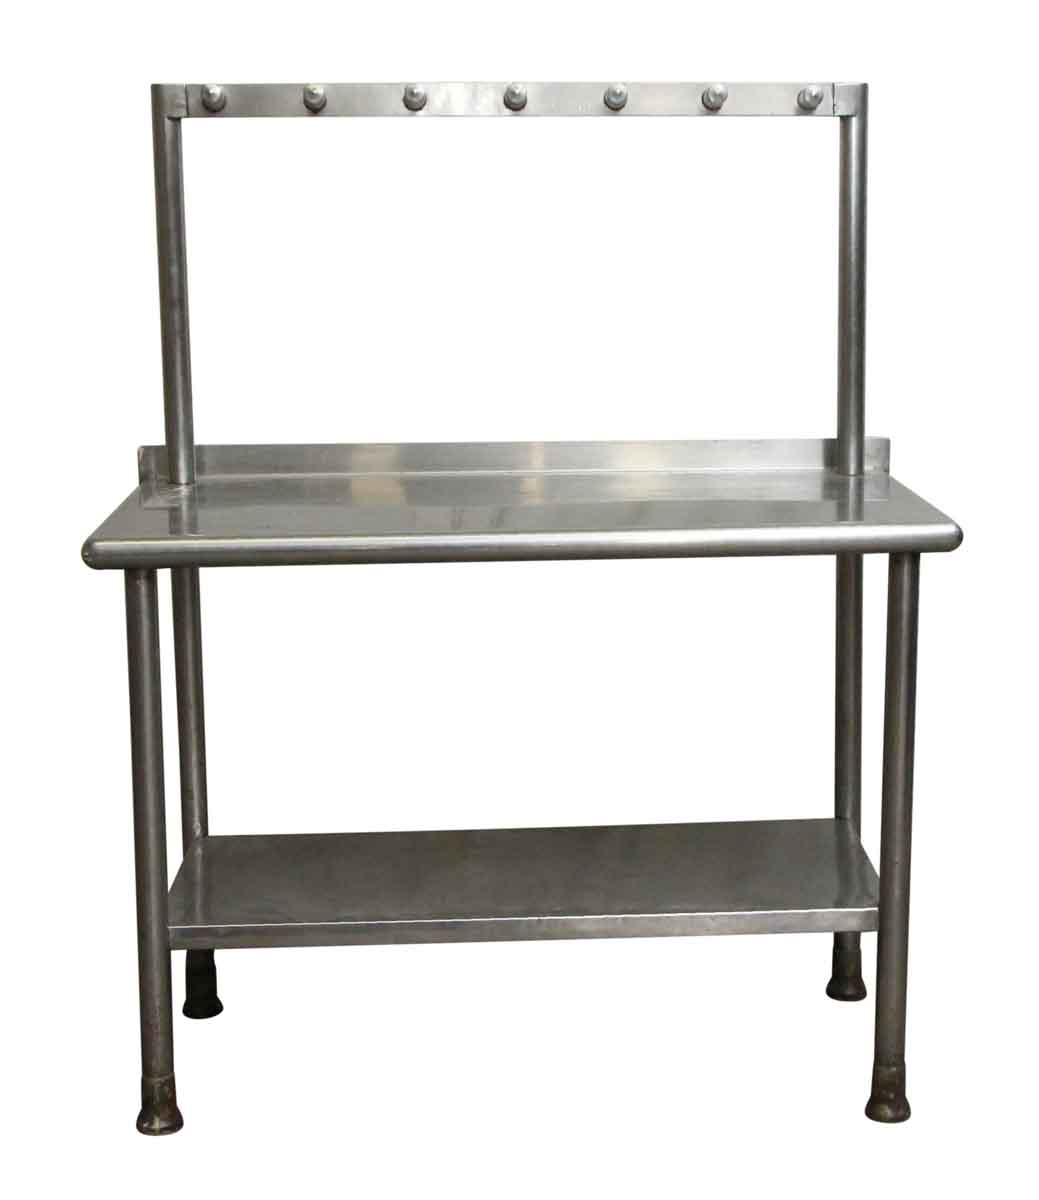 Commercial Stainless Steel Kitchen Table with Hanging Rack